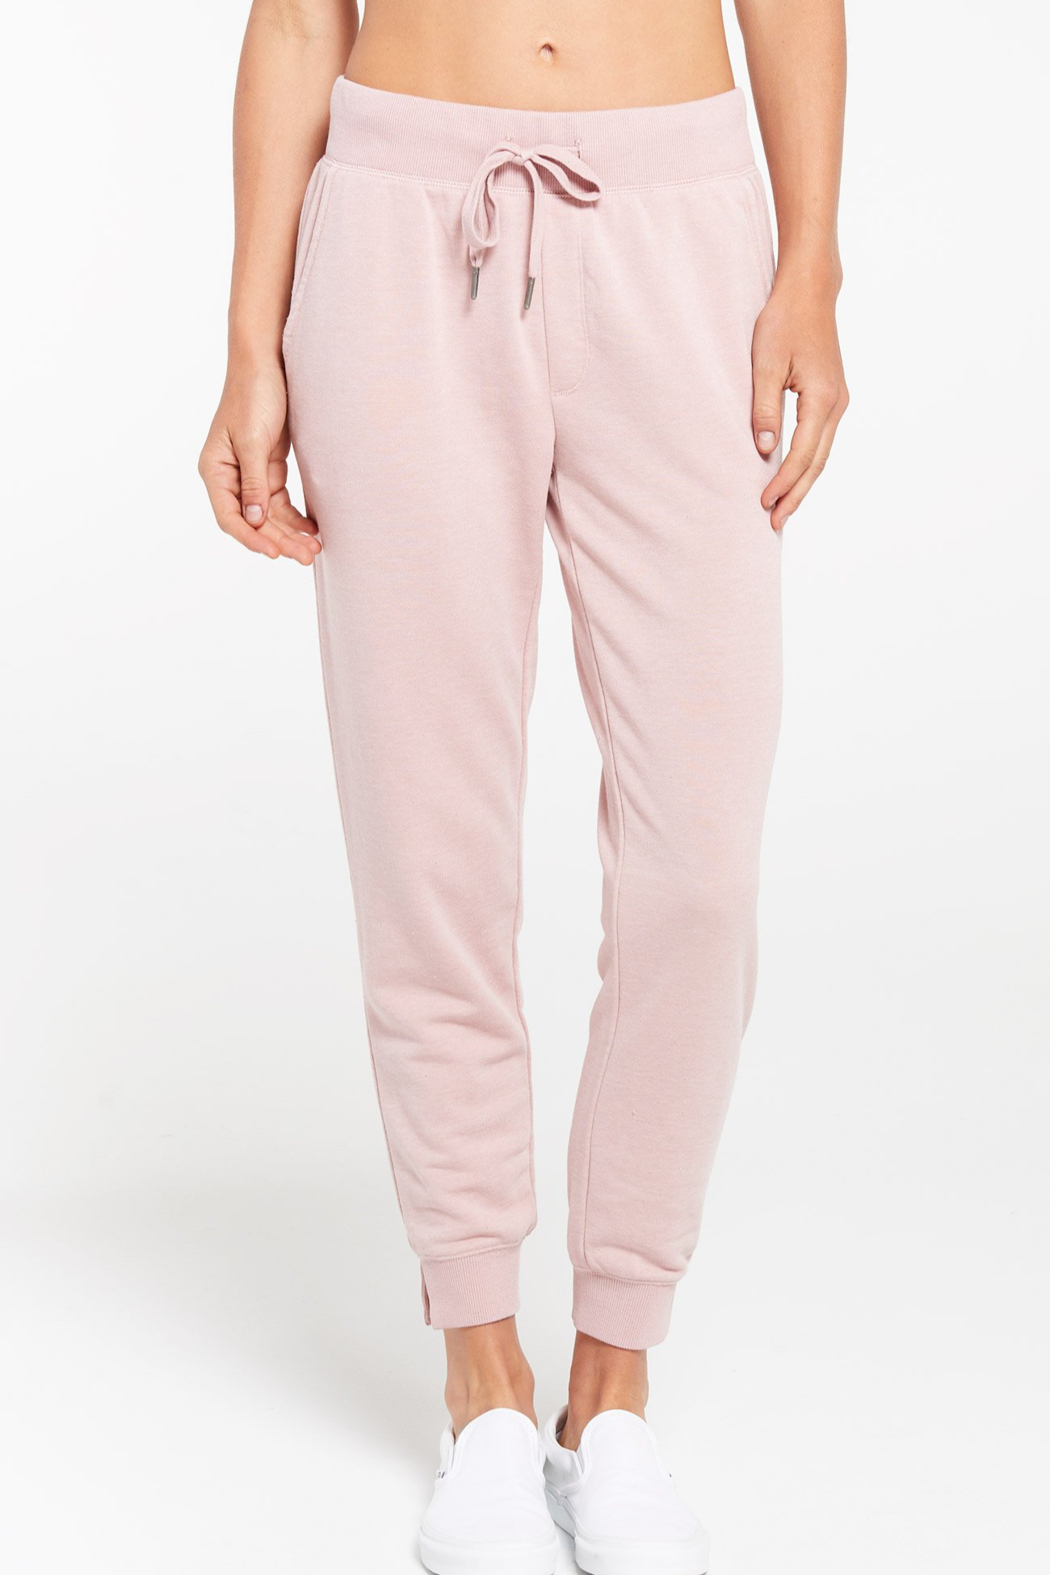 z supply Cypress Jogger - Front Cropped Image